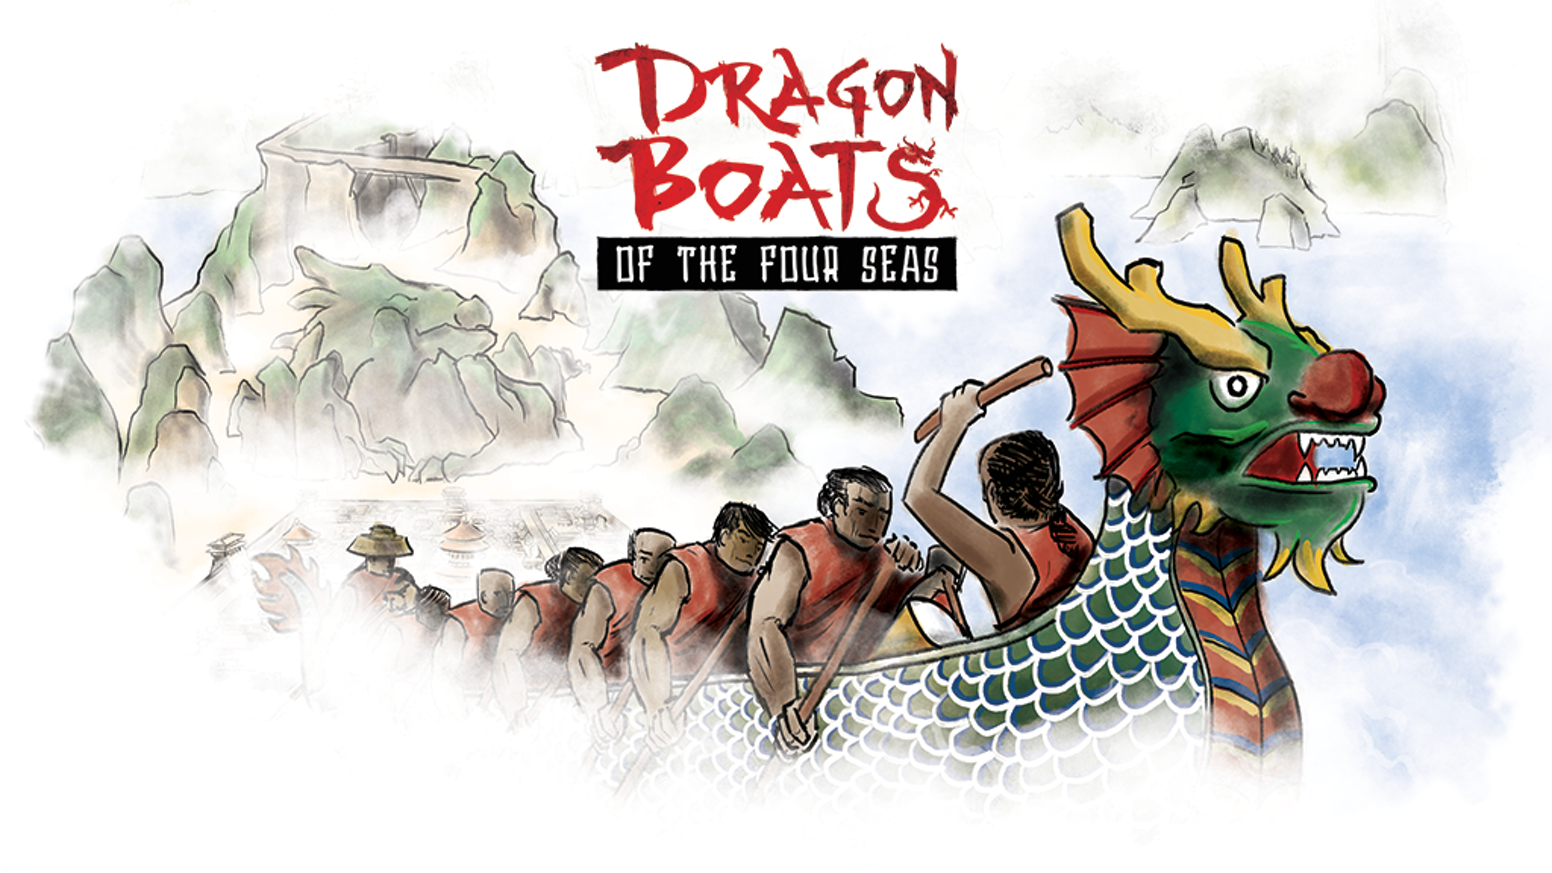 As leaders of noble houses in the middle kingdom, players make offerings for safe passage on dragon boats, to expand to forgotten lands